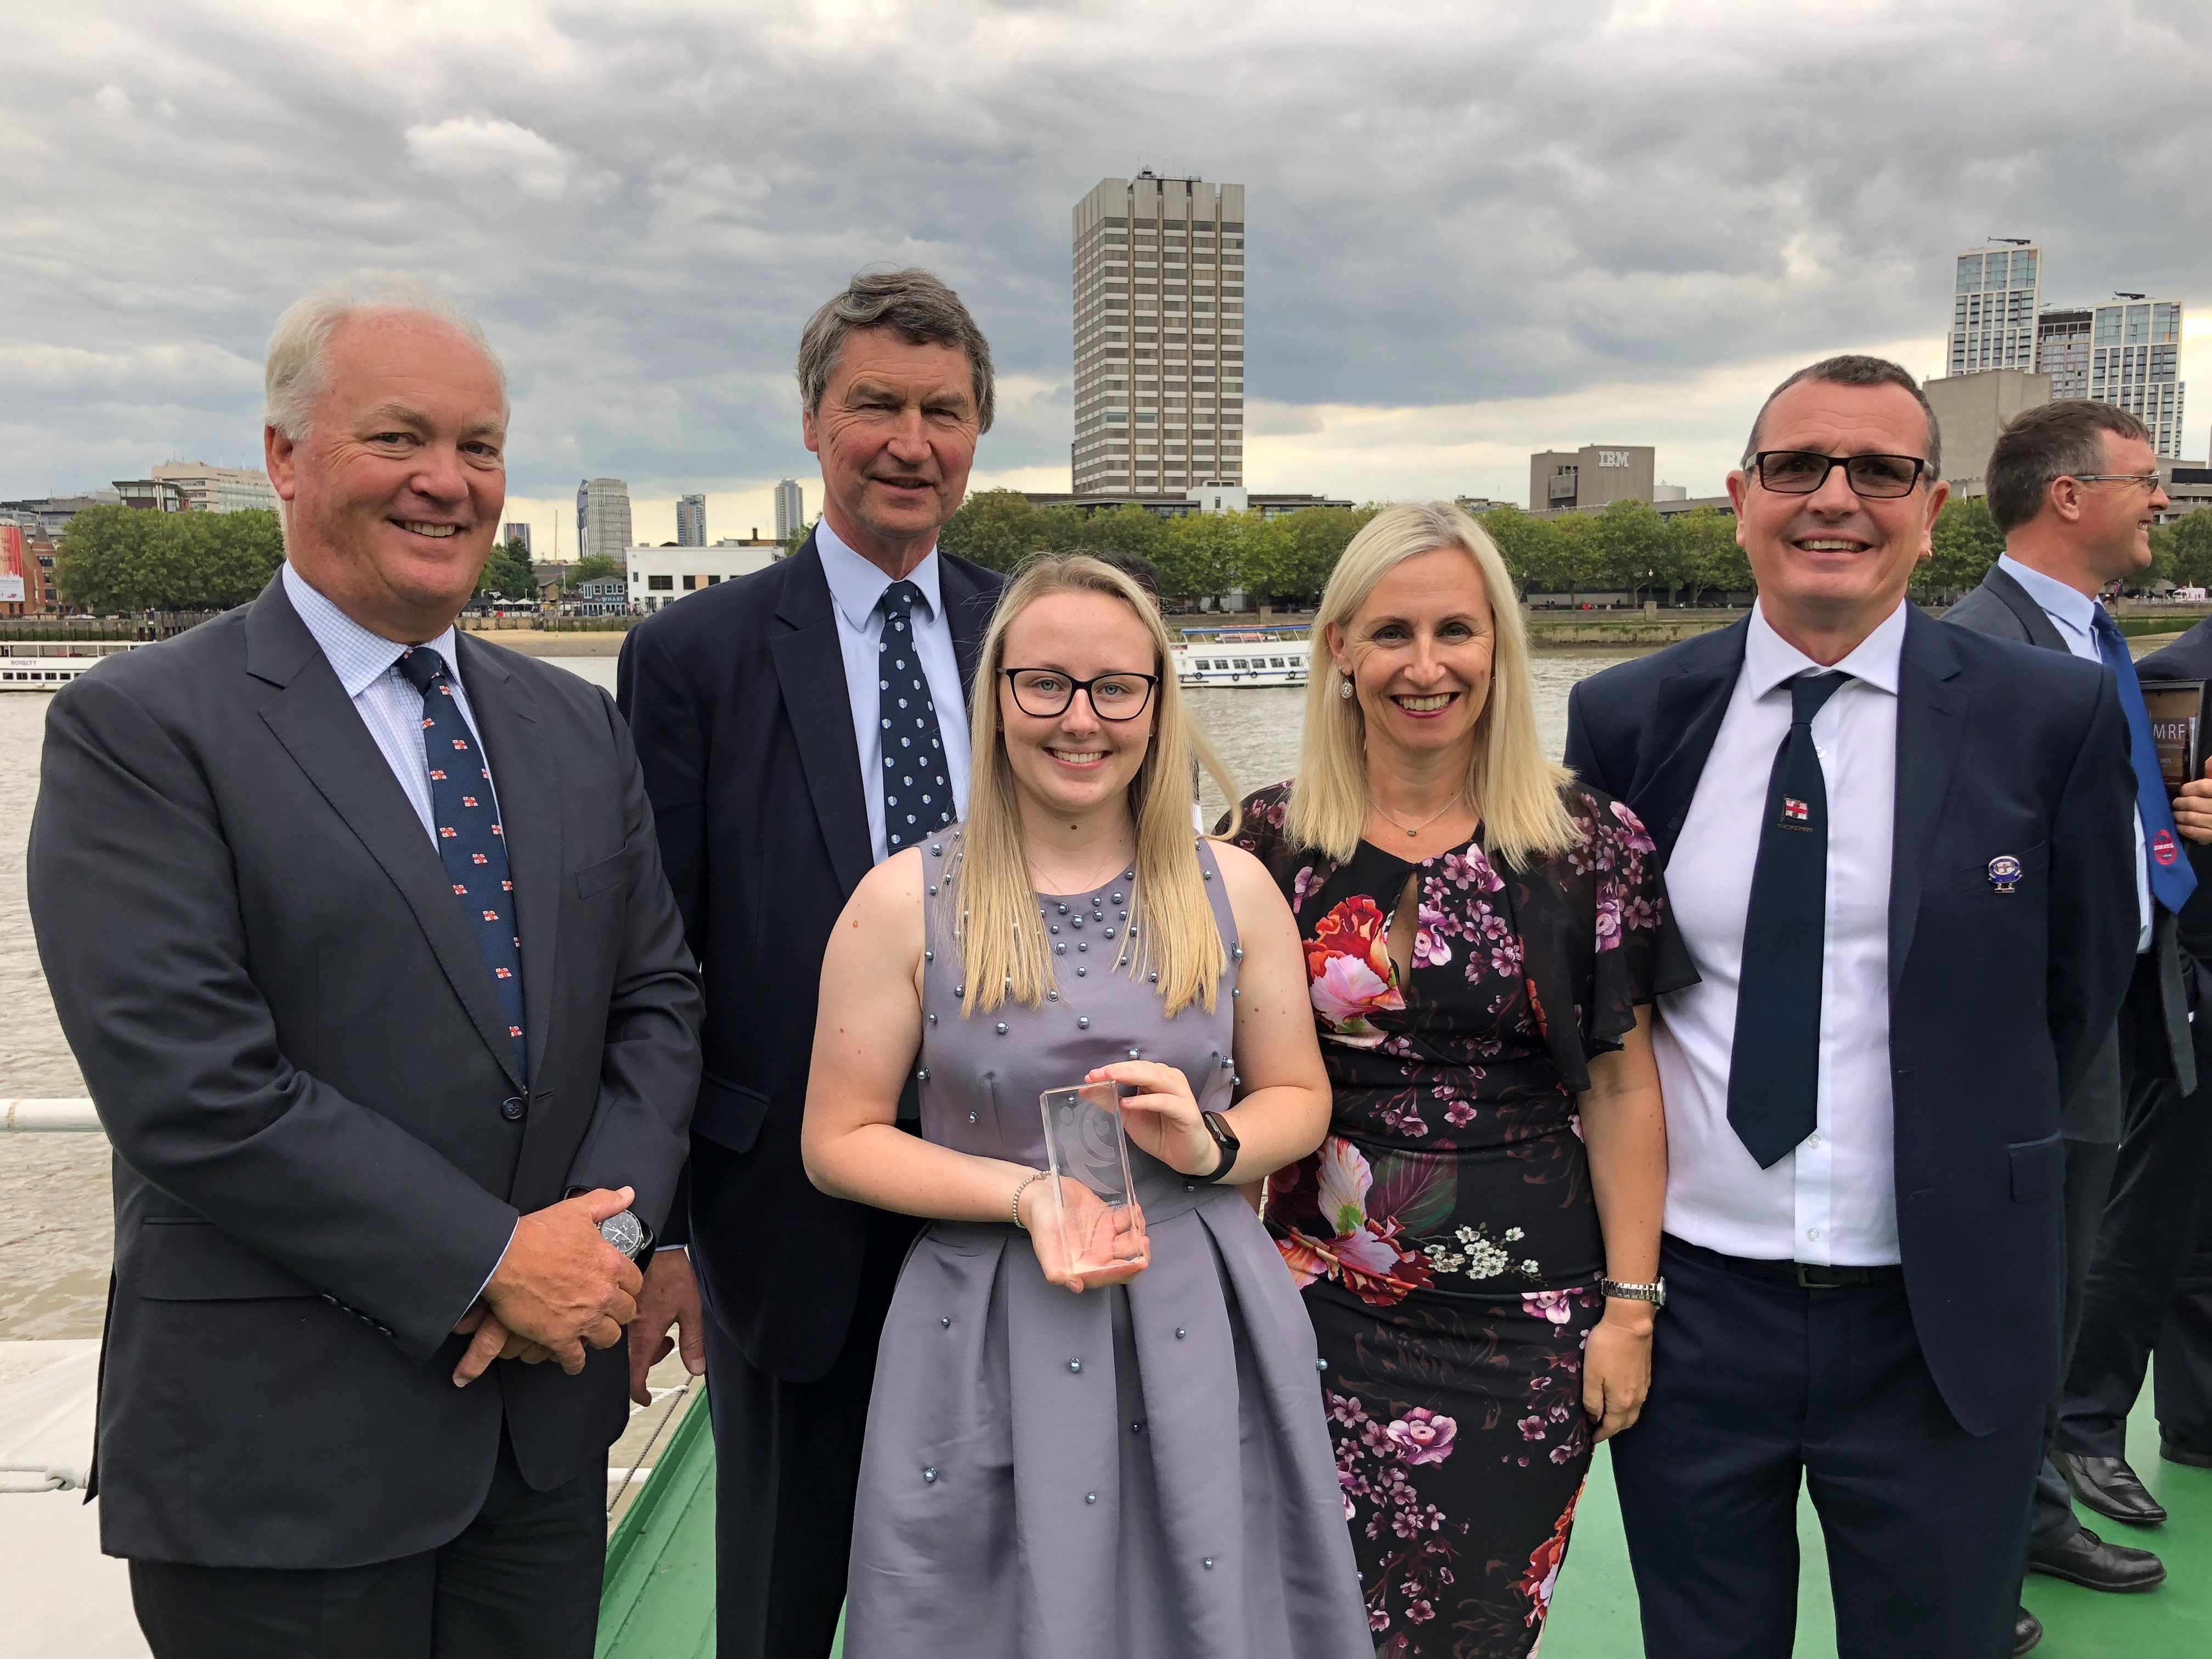 Isobel Tugwell pictured with her award. Also pictured are Mark Dowie (RNLI Chief Executive), Michelle Tugwell (Shoreham Press Officer) and Simon Tugwell (Second Coxswain and Mechanic at Shoreham)